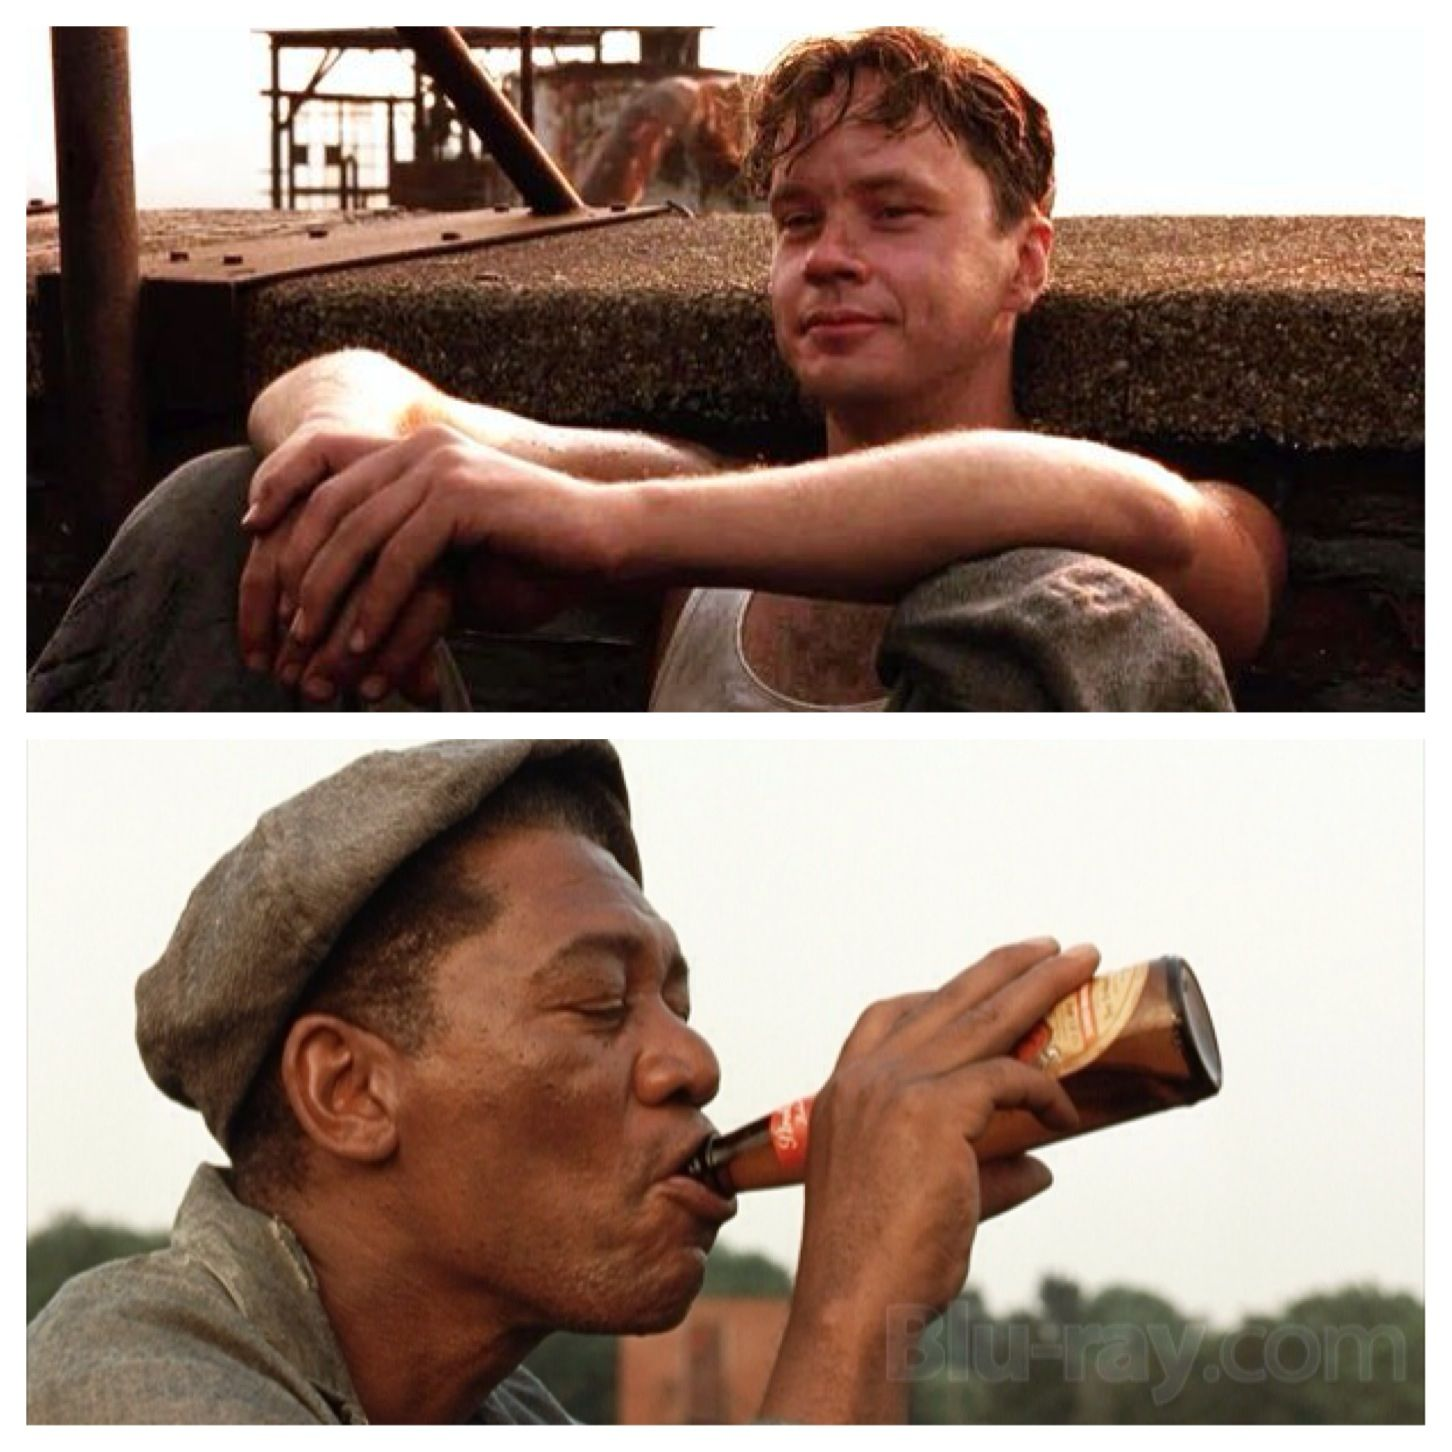 The Shawshank Redemption 1994 Red Narrating We Sat And Drank With The Sun On Our Shoulders A The Shawshank Redemption Redemption Full Movies Online Free